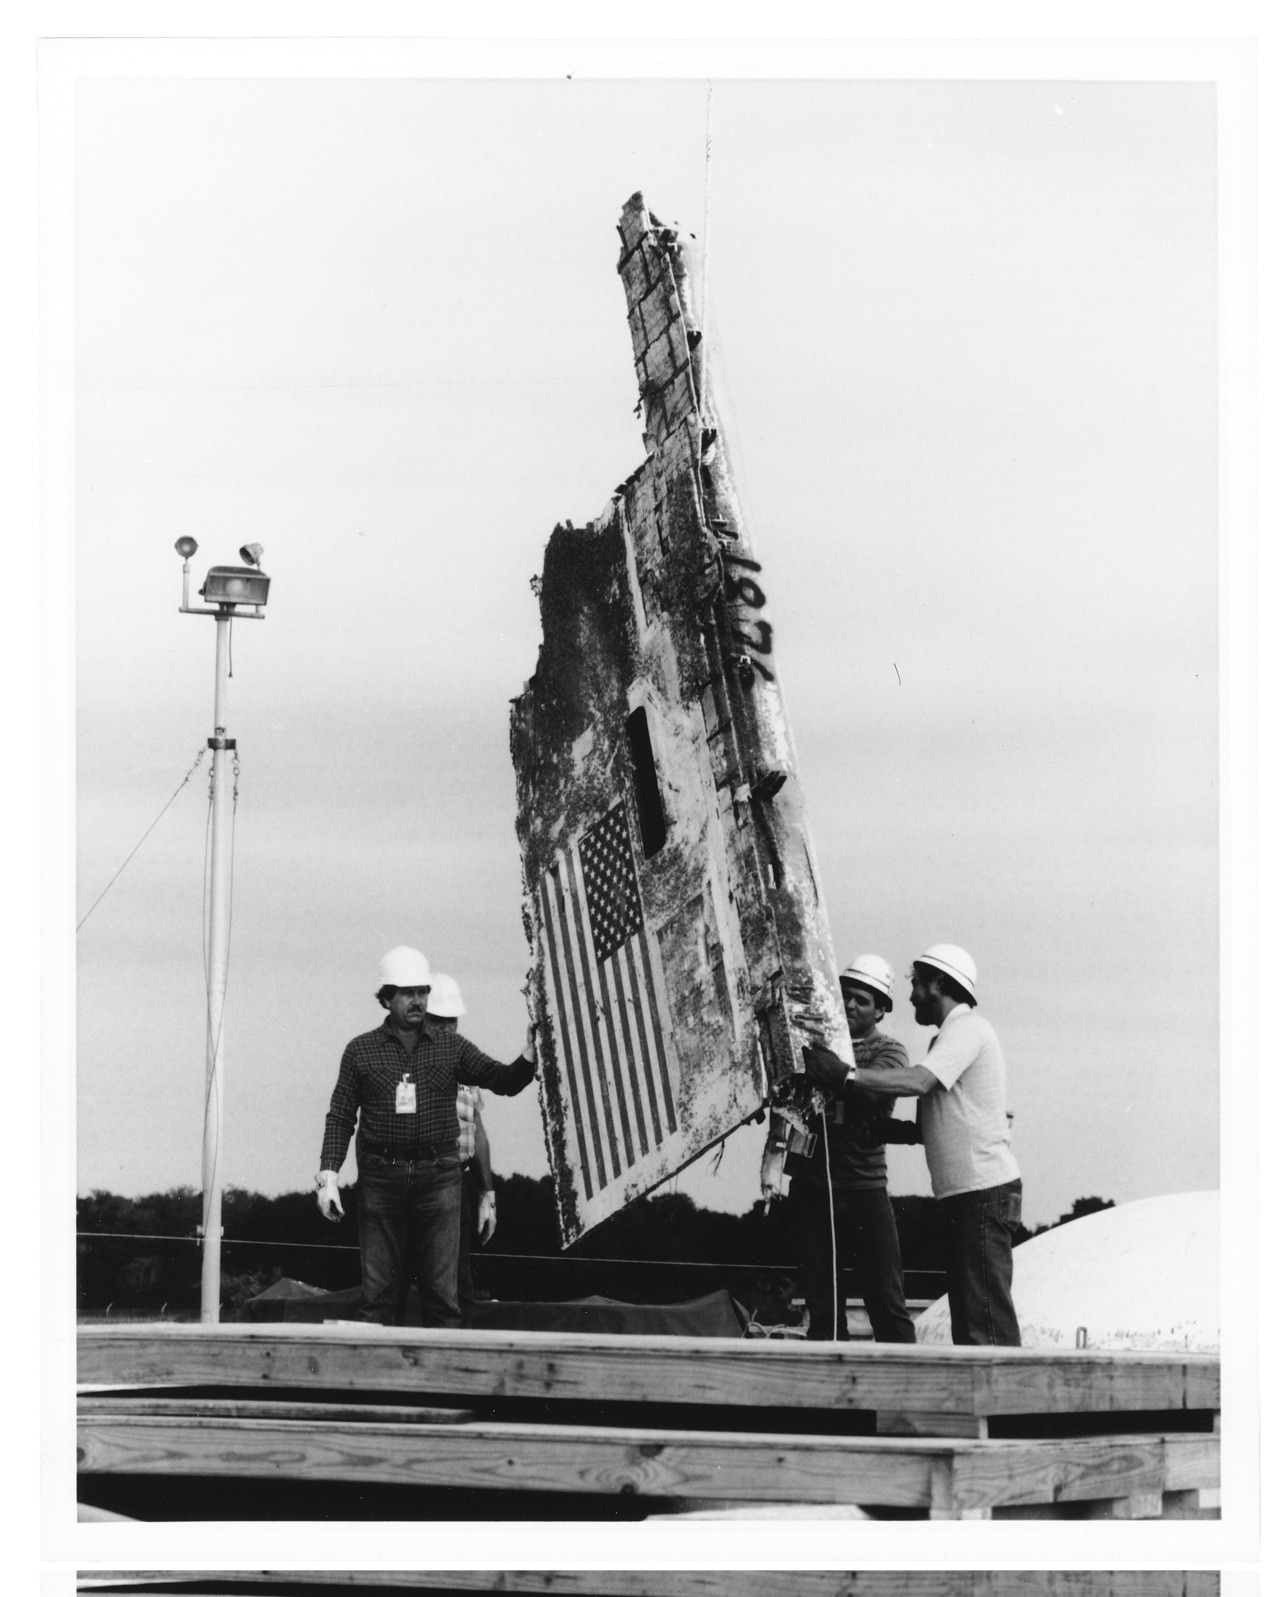 Challenger's resting place On January 28, 1986, at 11:30, A.M. just one minute after lift off, the Space Shuttle Challenger and its crew were destroyed in an explosion. After pieces of the Challenger were examined, they were lowered into their permanent storage area in the Minuteman missile silo at Cape Canaveral Air Force Station, Florida.